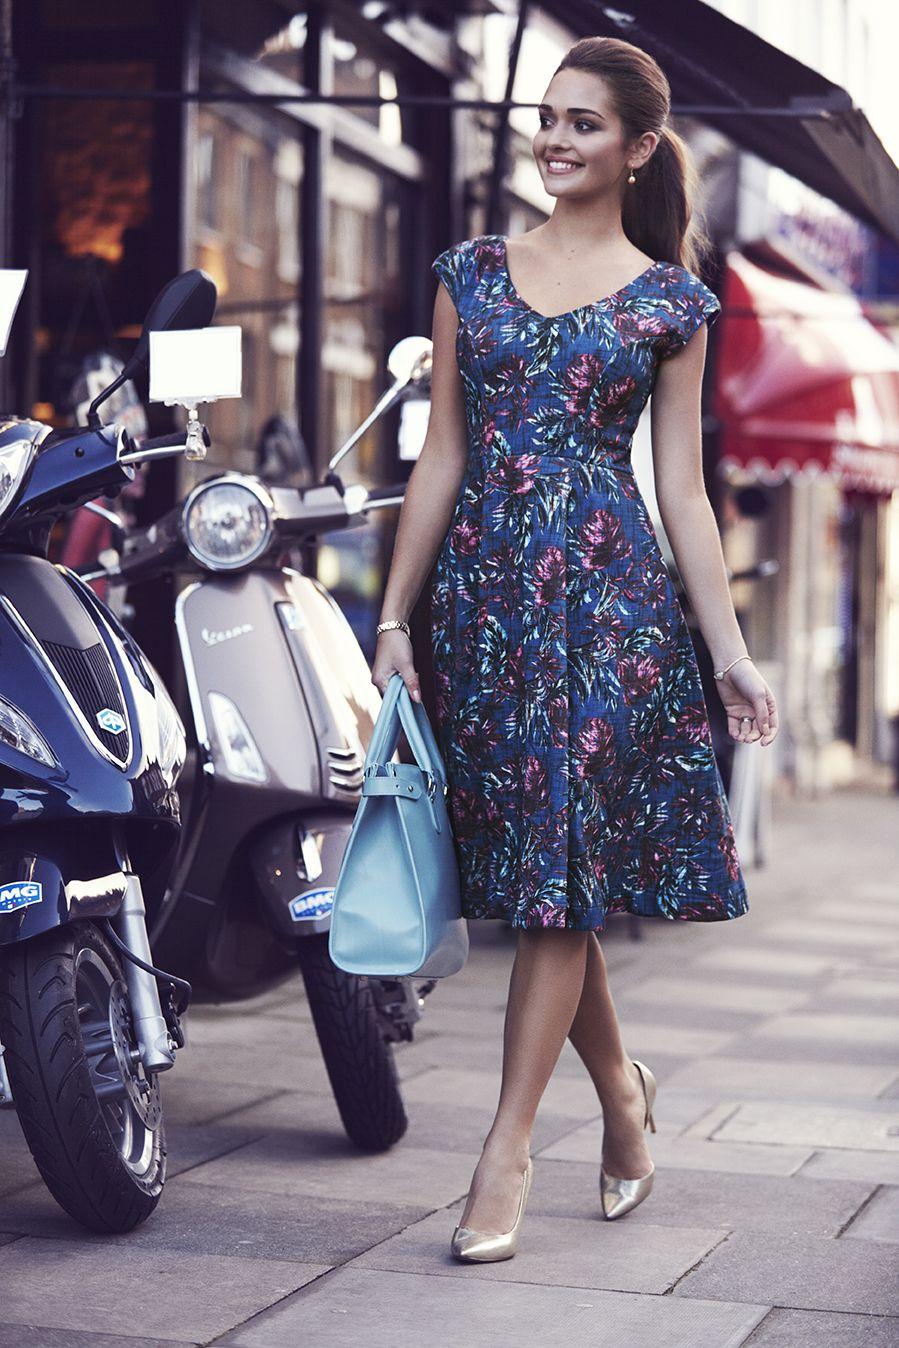 http://www.aliestreet.com/occasionwear/item/ASOLDTN/Olivia-Dress-(Tropical-Nights).html  Our 1950's inspired floral party dress has swish and sway with a lovely flared skirt and cinched in waist.